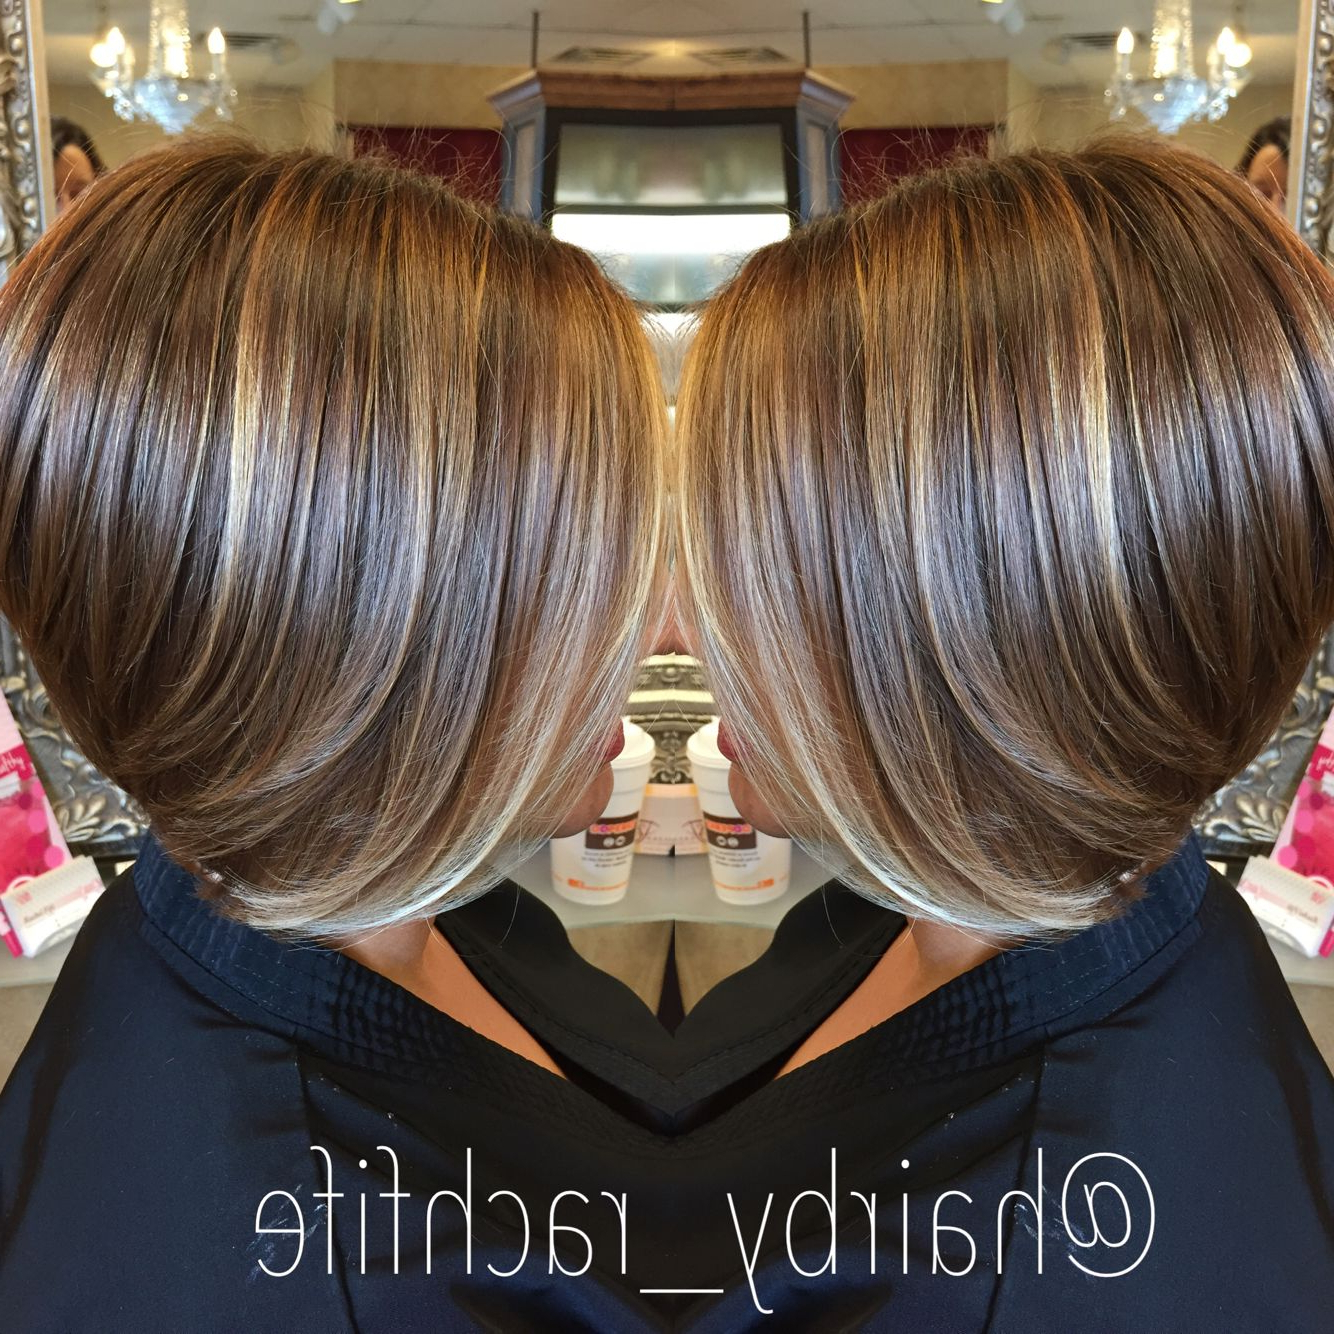 Short Bob Haircut With Subtle Balayage Highlights. Hairrachel Throughout Short Stacked Bob Hairstyles With Subtle Balayage (Gallery 2 of 20)